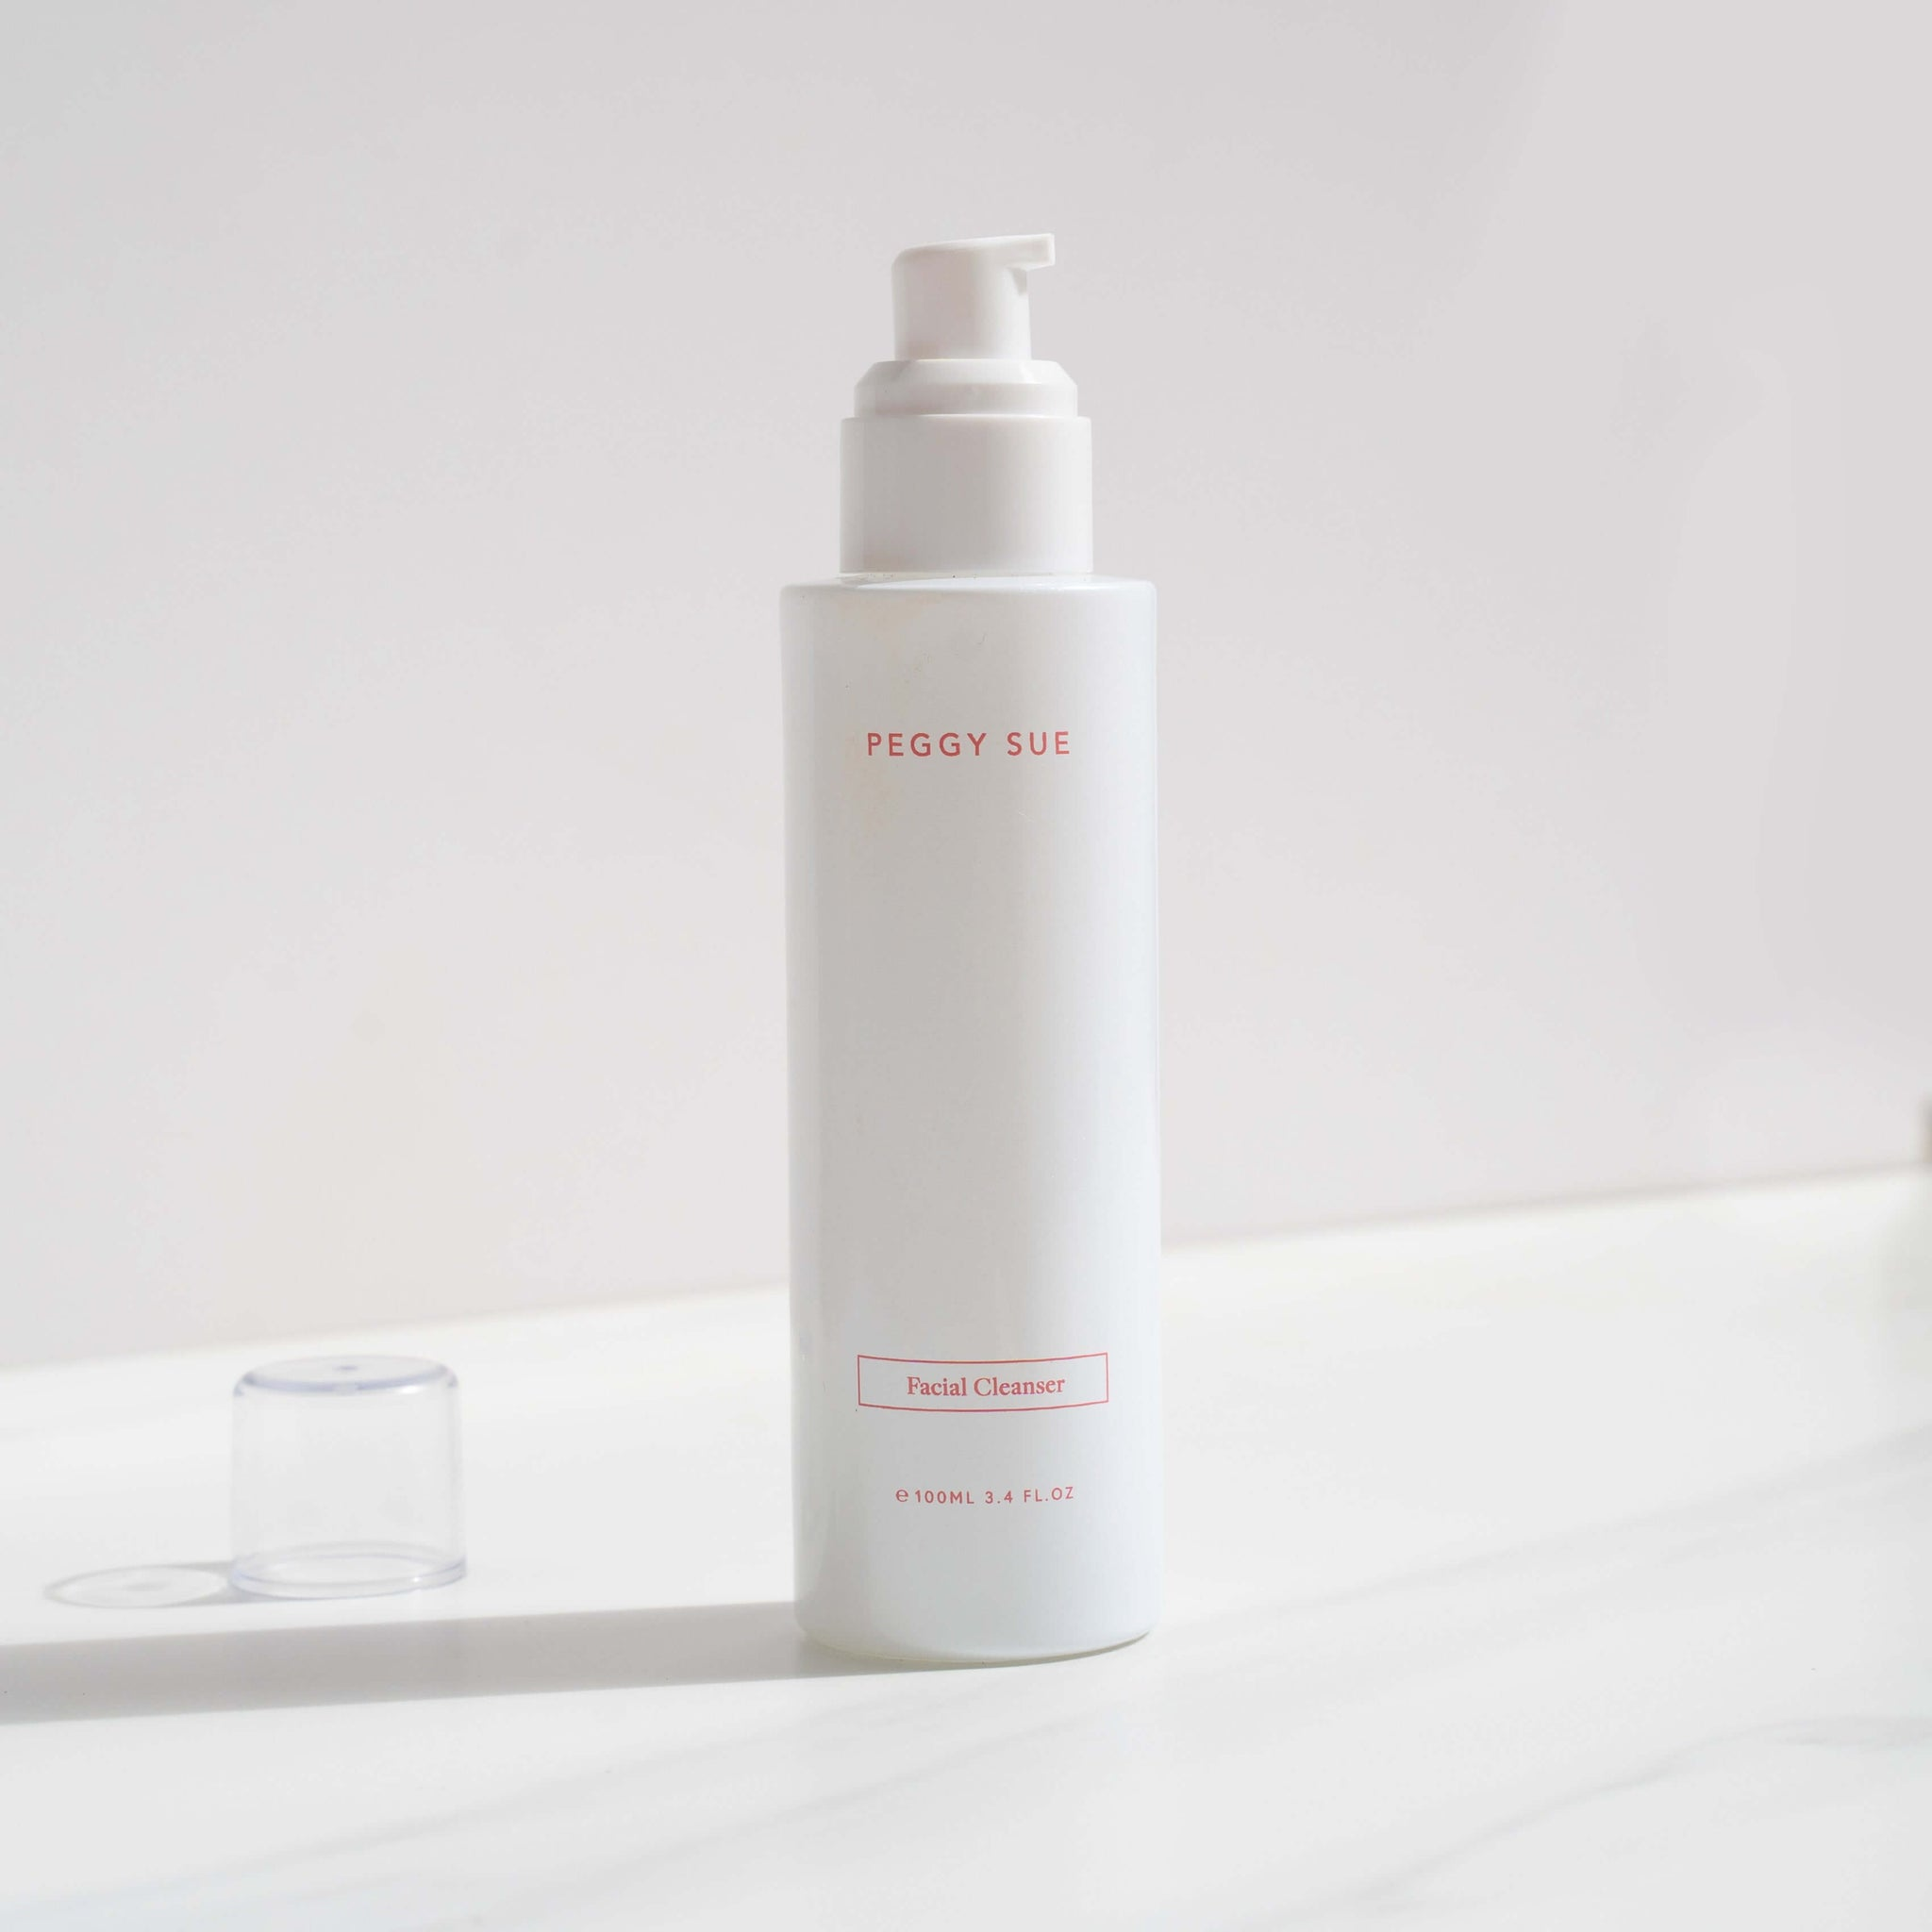 Peggy Sue - Facial Cleanser - Ricepaperthelabel